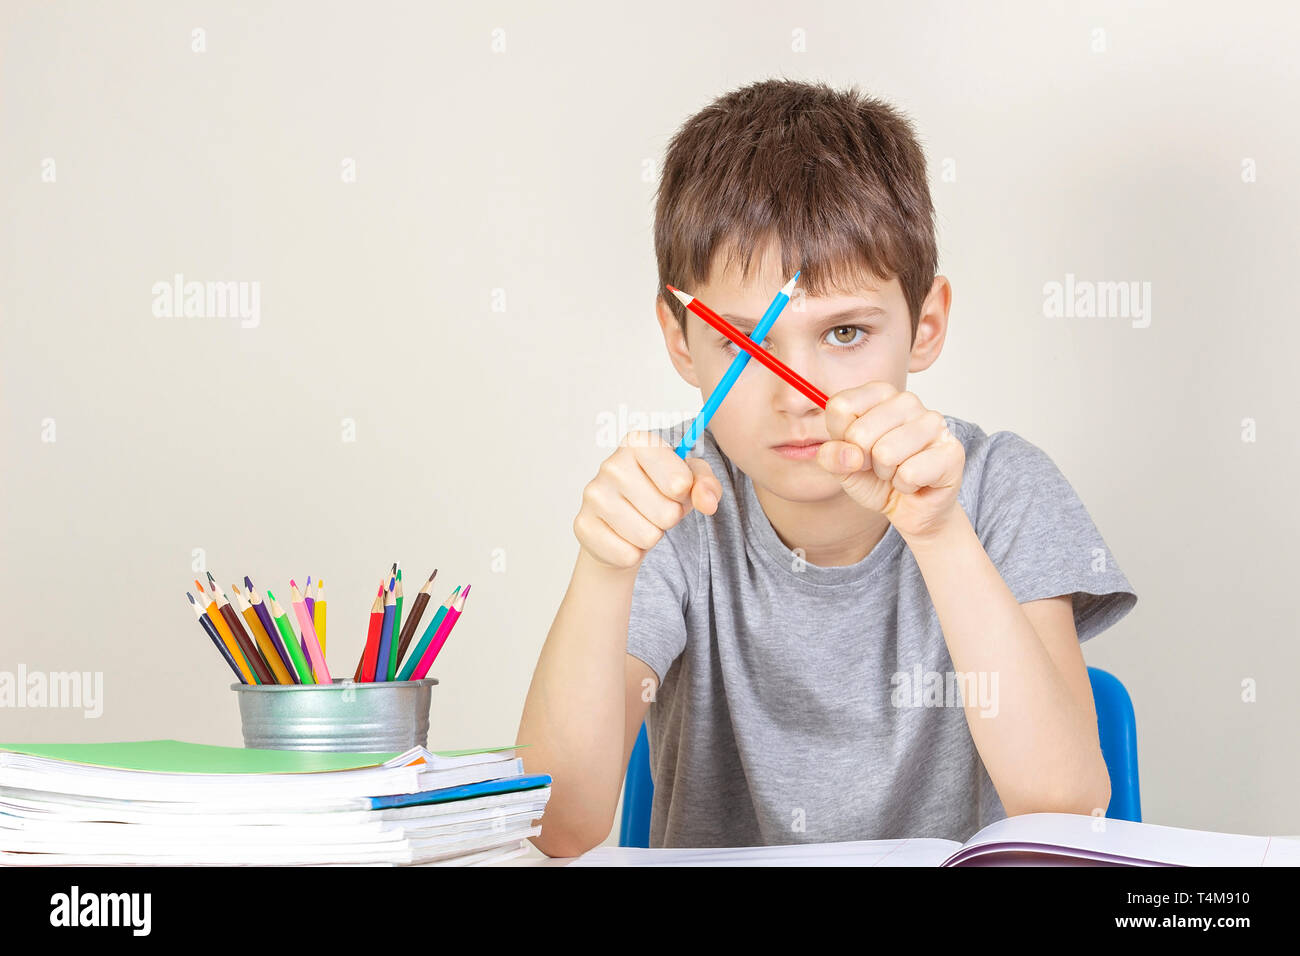 Sad angry boy have difficulties doing homework - Stock Image